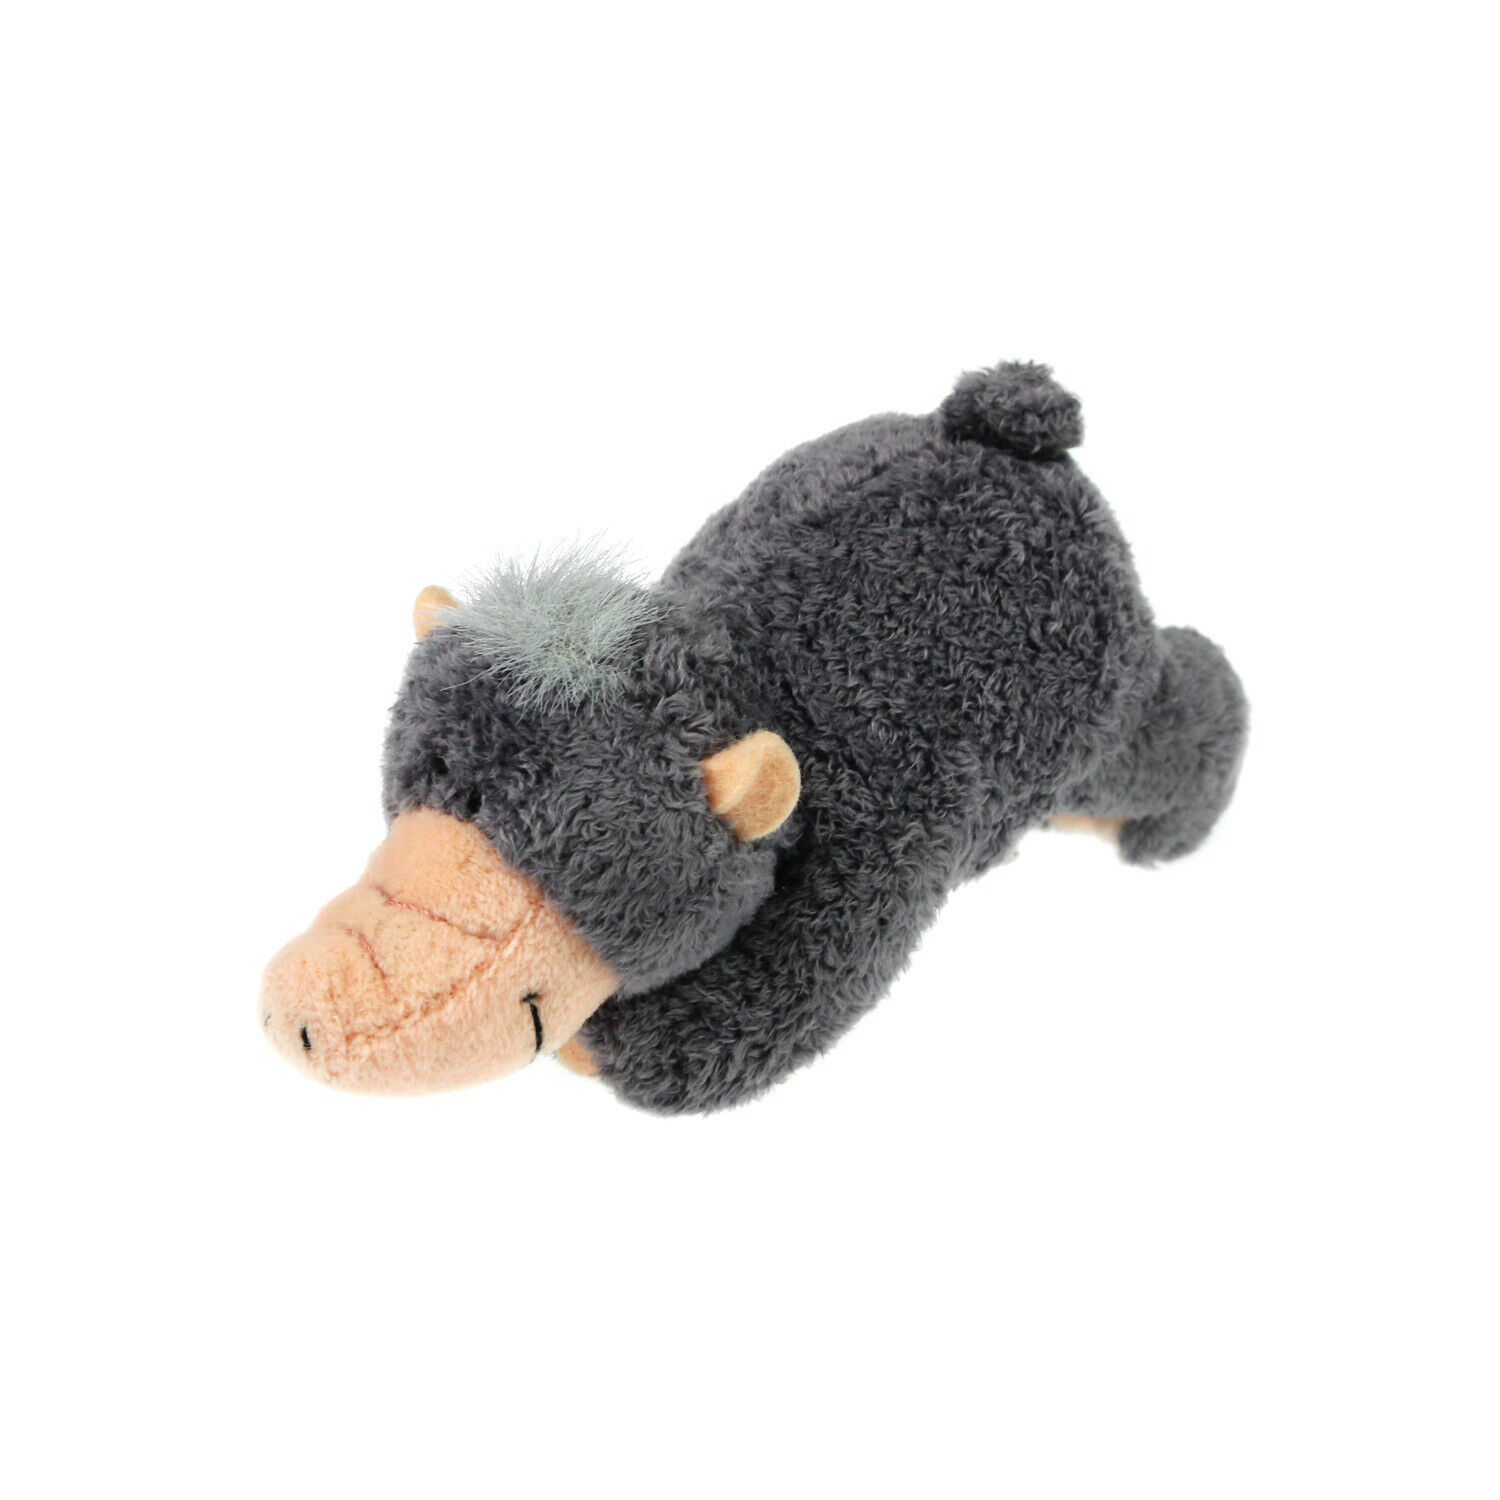 Primary image for MagNICI Mole Grey Stuffed Toy Animal Magnet in Paws 5 inches 12 cm